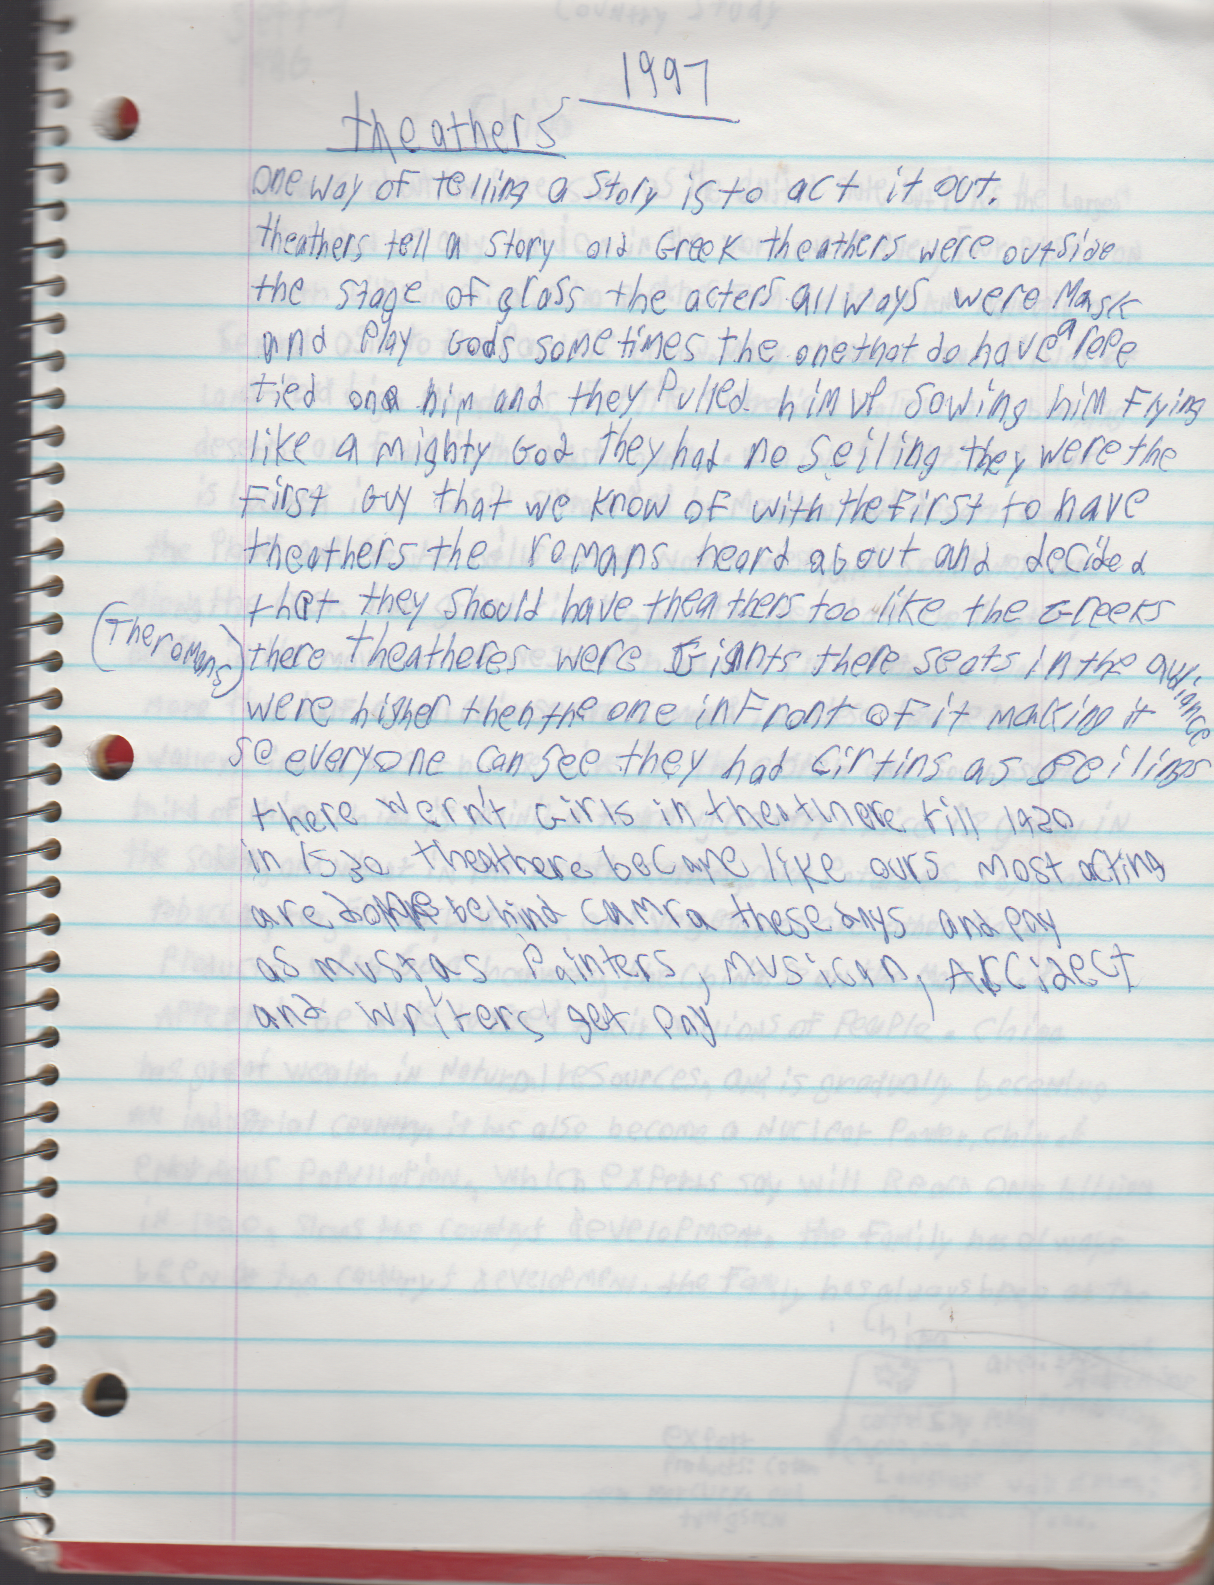 1996-08-18 - Saturday - 11 yr old Joey Arnold's School Book, dates through to 1998 apx, mostly 96, Writings, Drawings, Etc-067.png